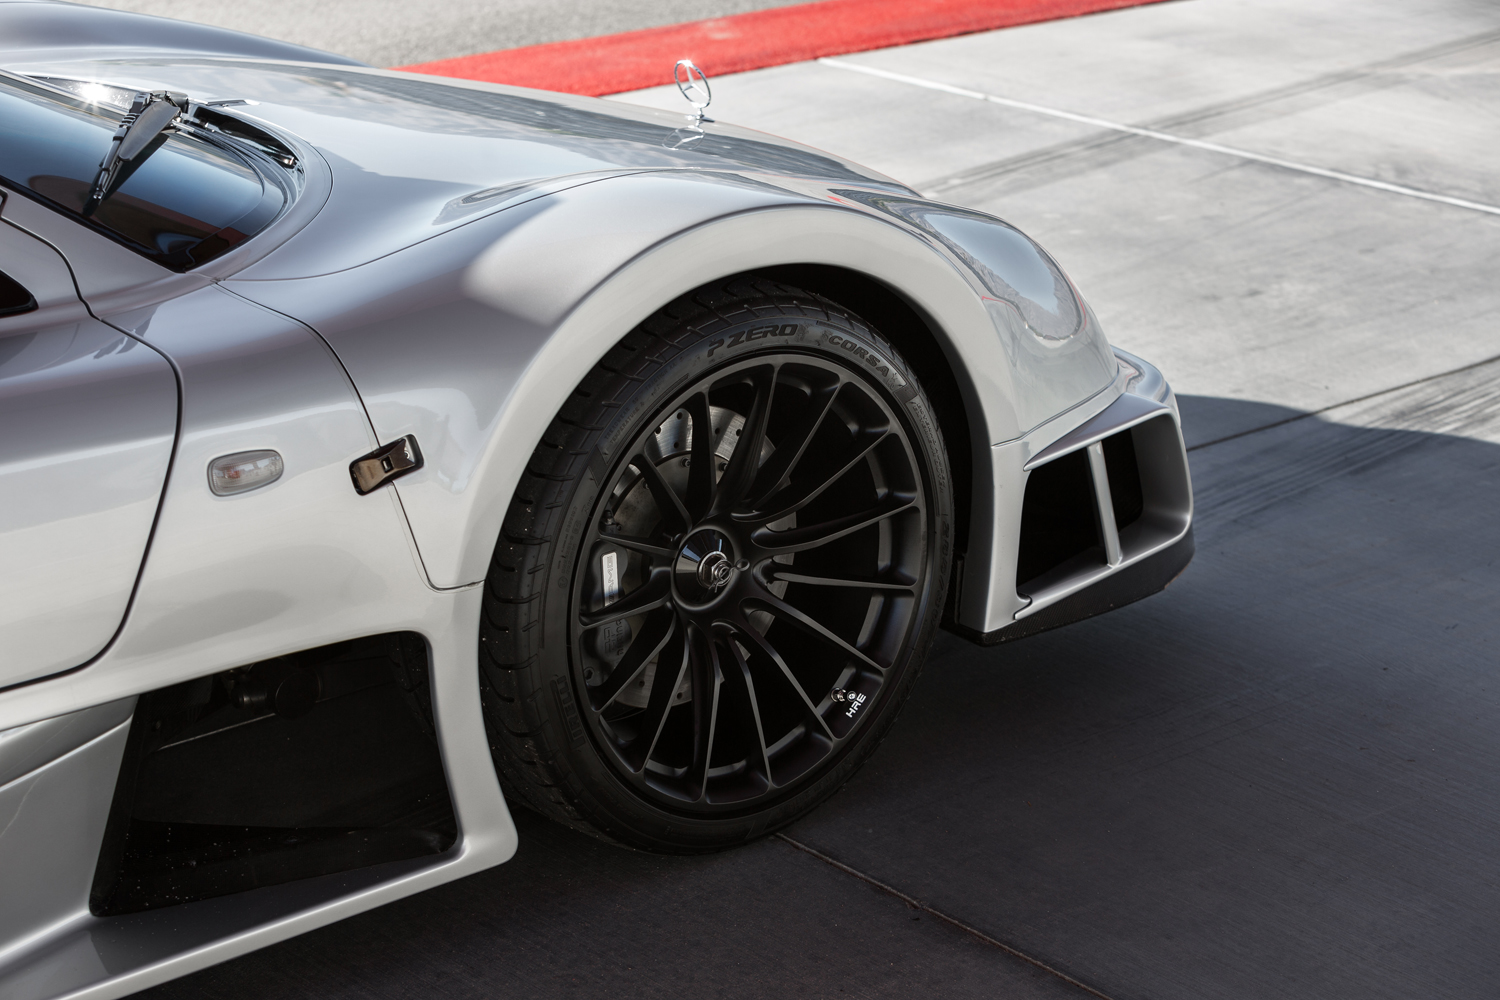 Mercedes-Benz CLK GTR front HRE Wheels